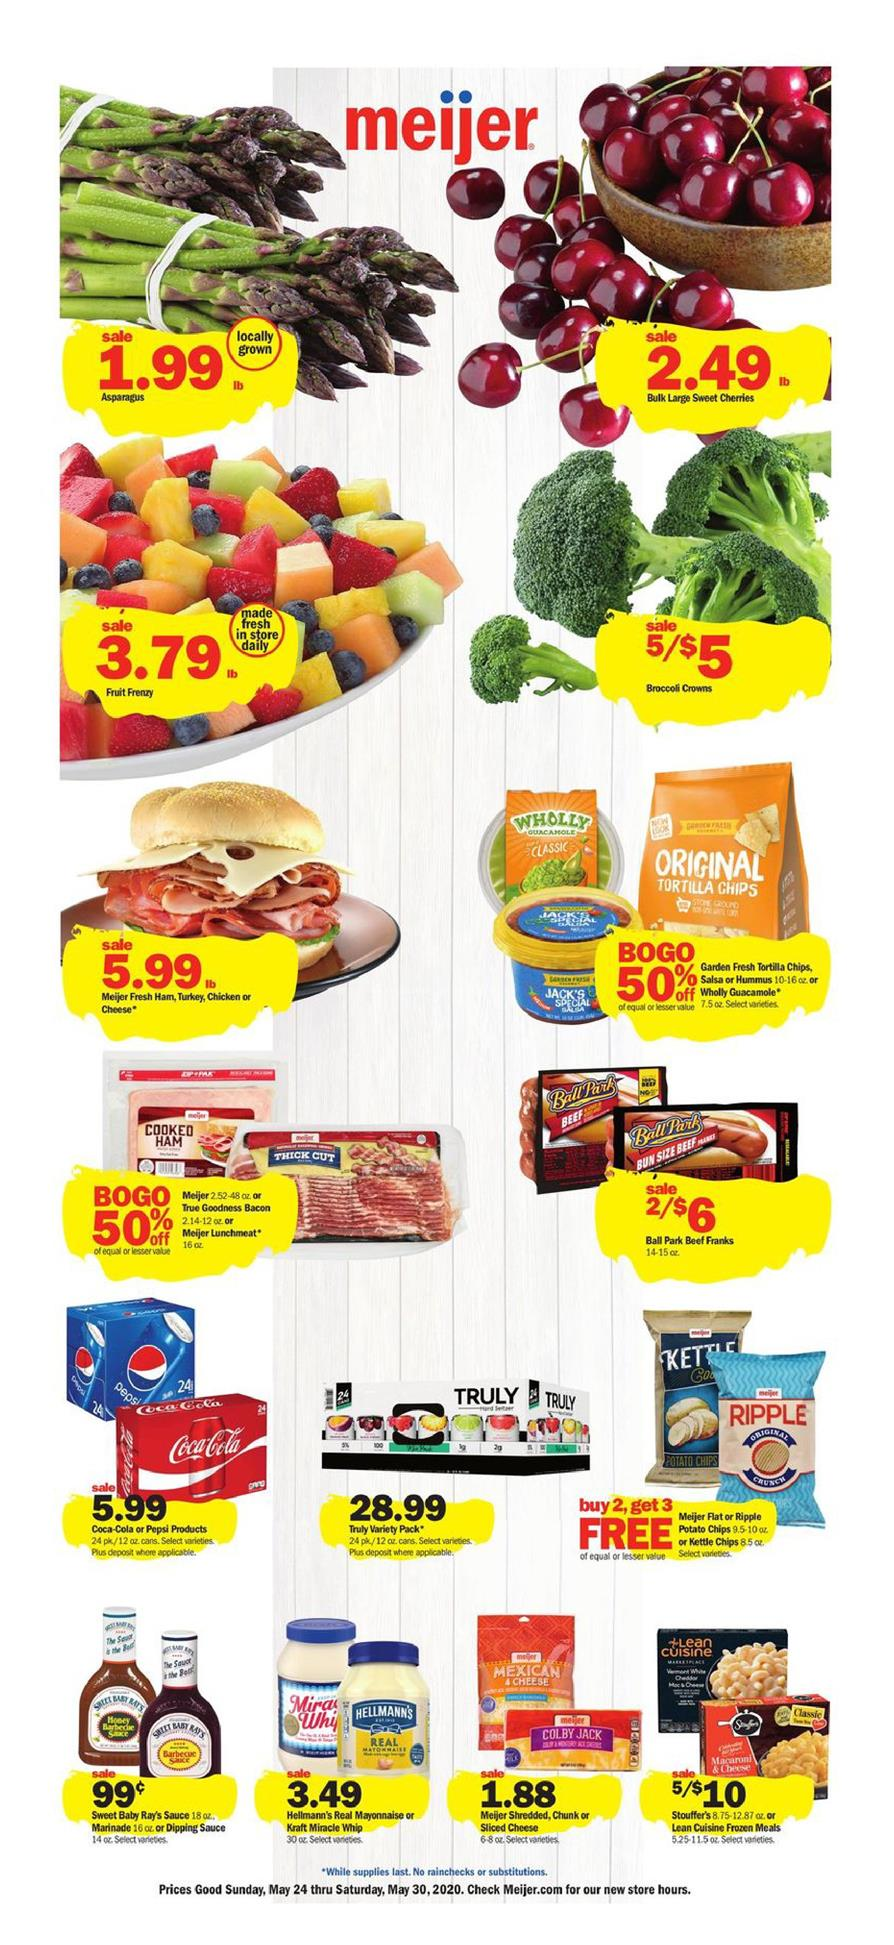 Meijer Final May Weekly Grocery Ad valid from May 24 – 30, 2020